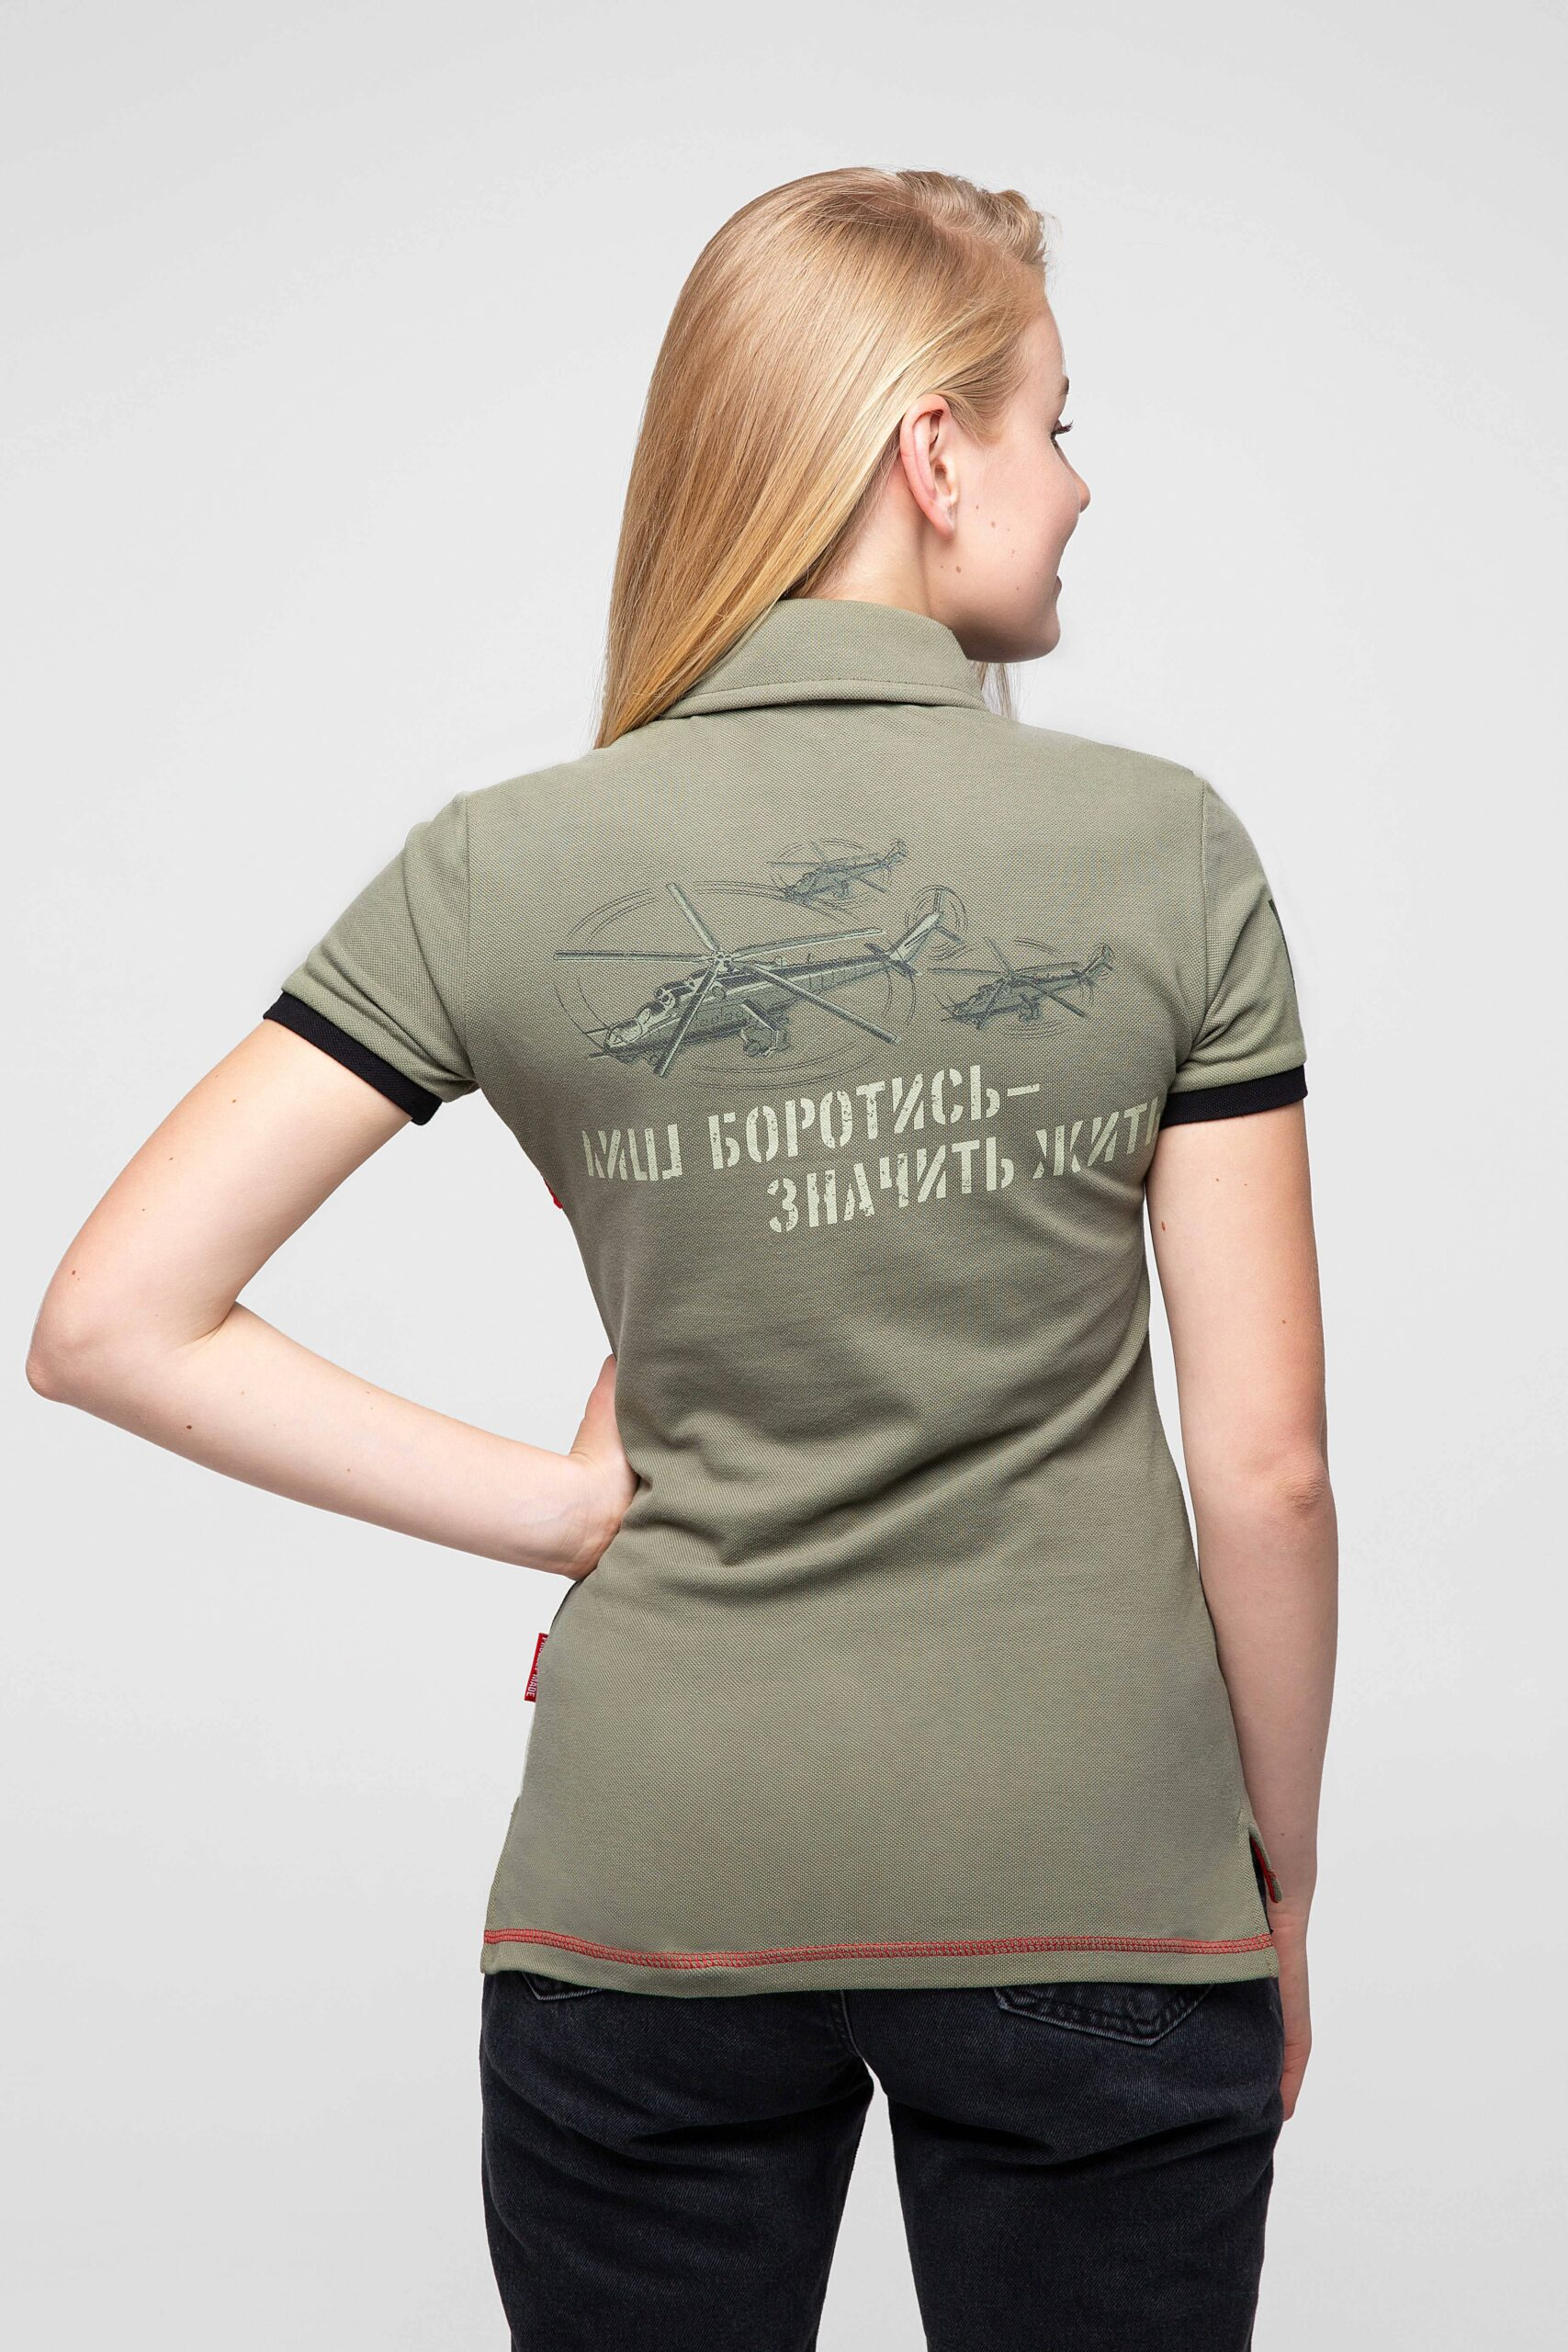 Women's Polo Shirt 16 Brigade. Color khaki.  Size worn by the model: S.